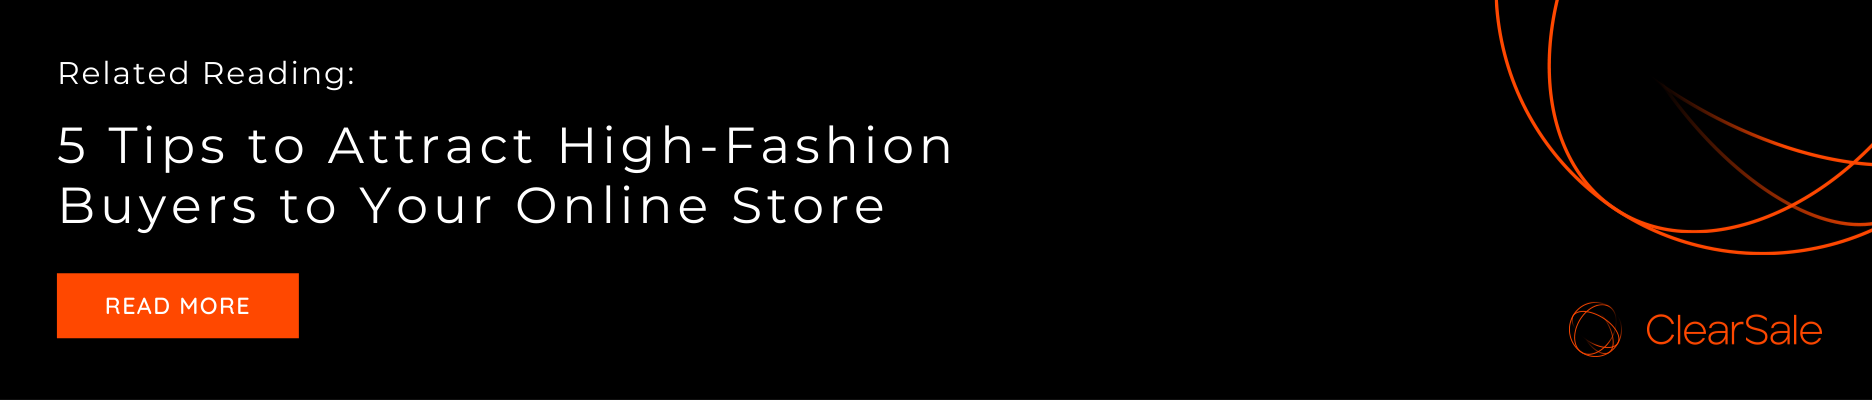 Related Reading: 5 Tips to Attract High-Fashion Buyers to Your Online Store